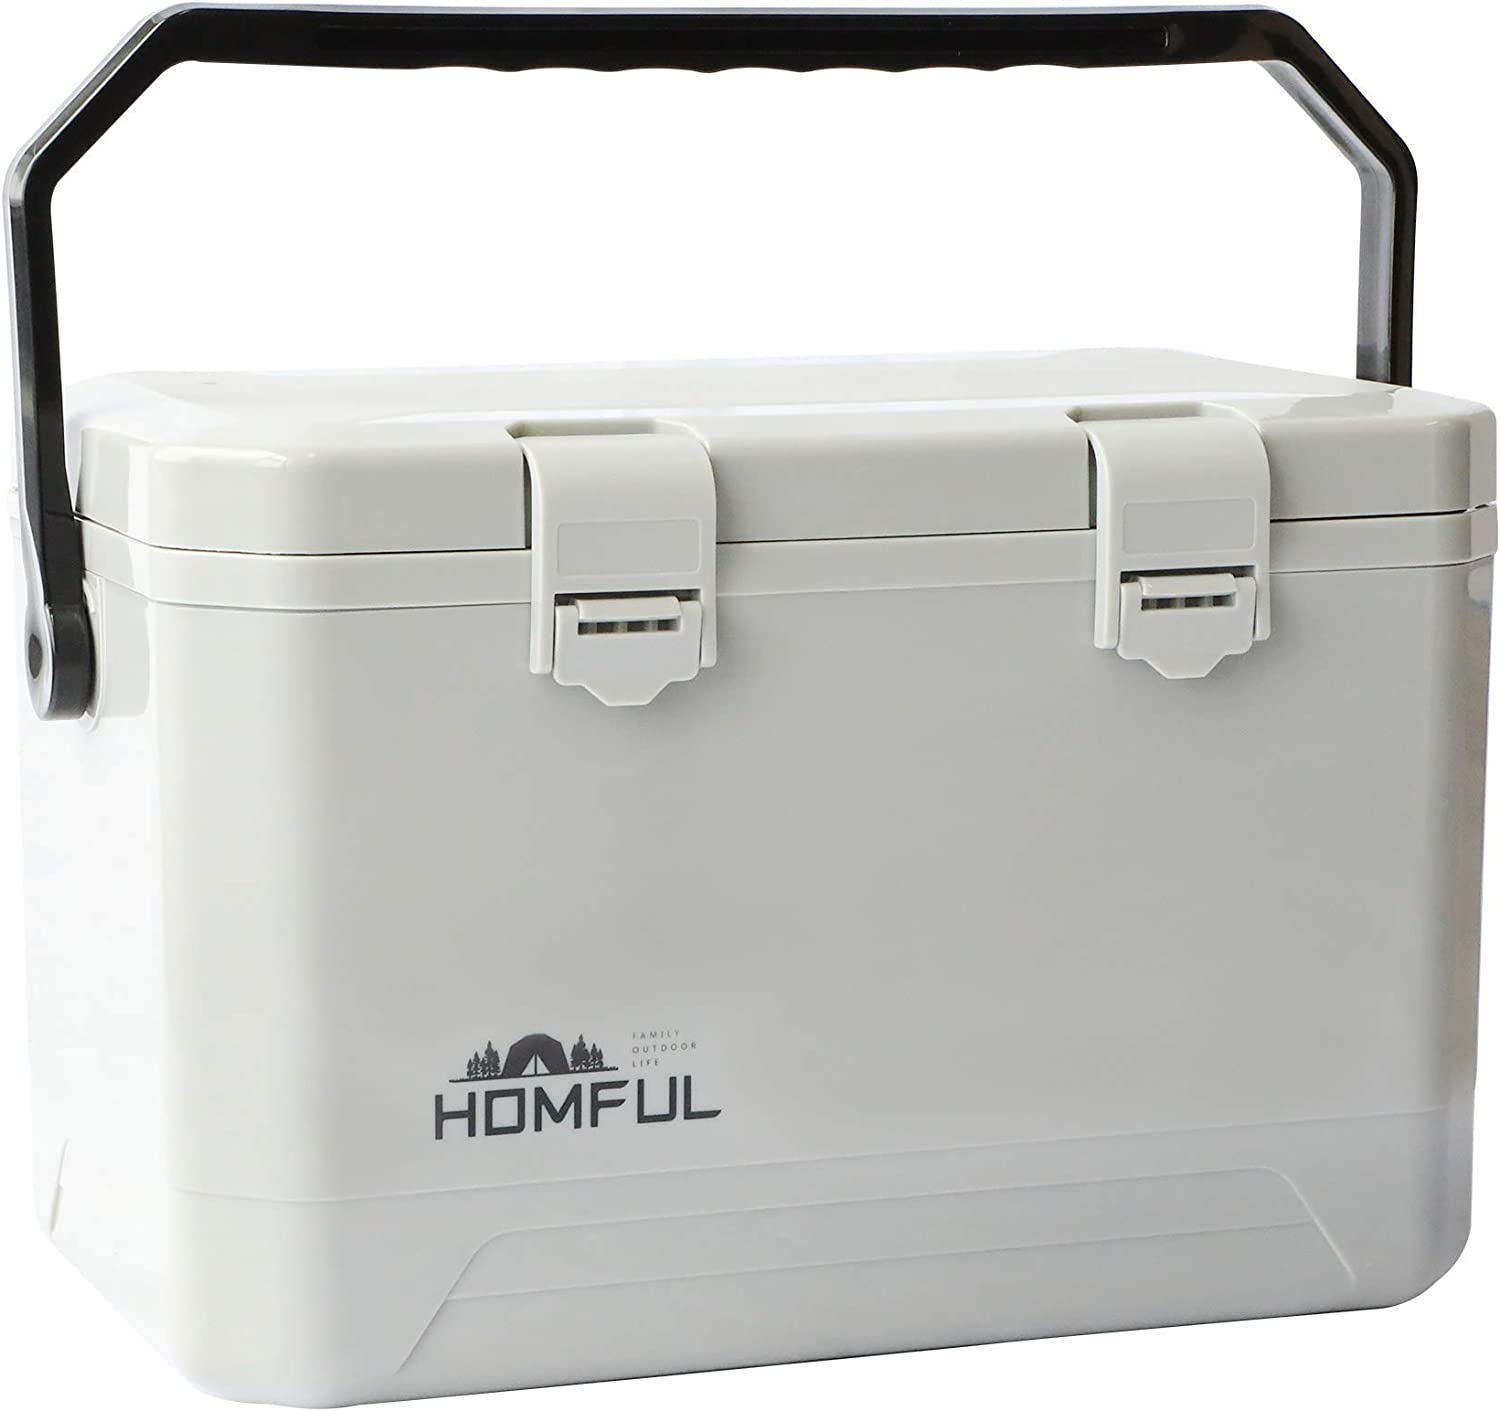 HOMFUL Cooler,18-Quart Small Cooler Lunch Box,Portable Mini Cooler Ice Chest Ideal for Camping,Fishing,Barbecues-Gray